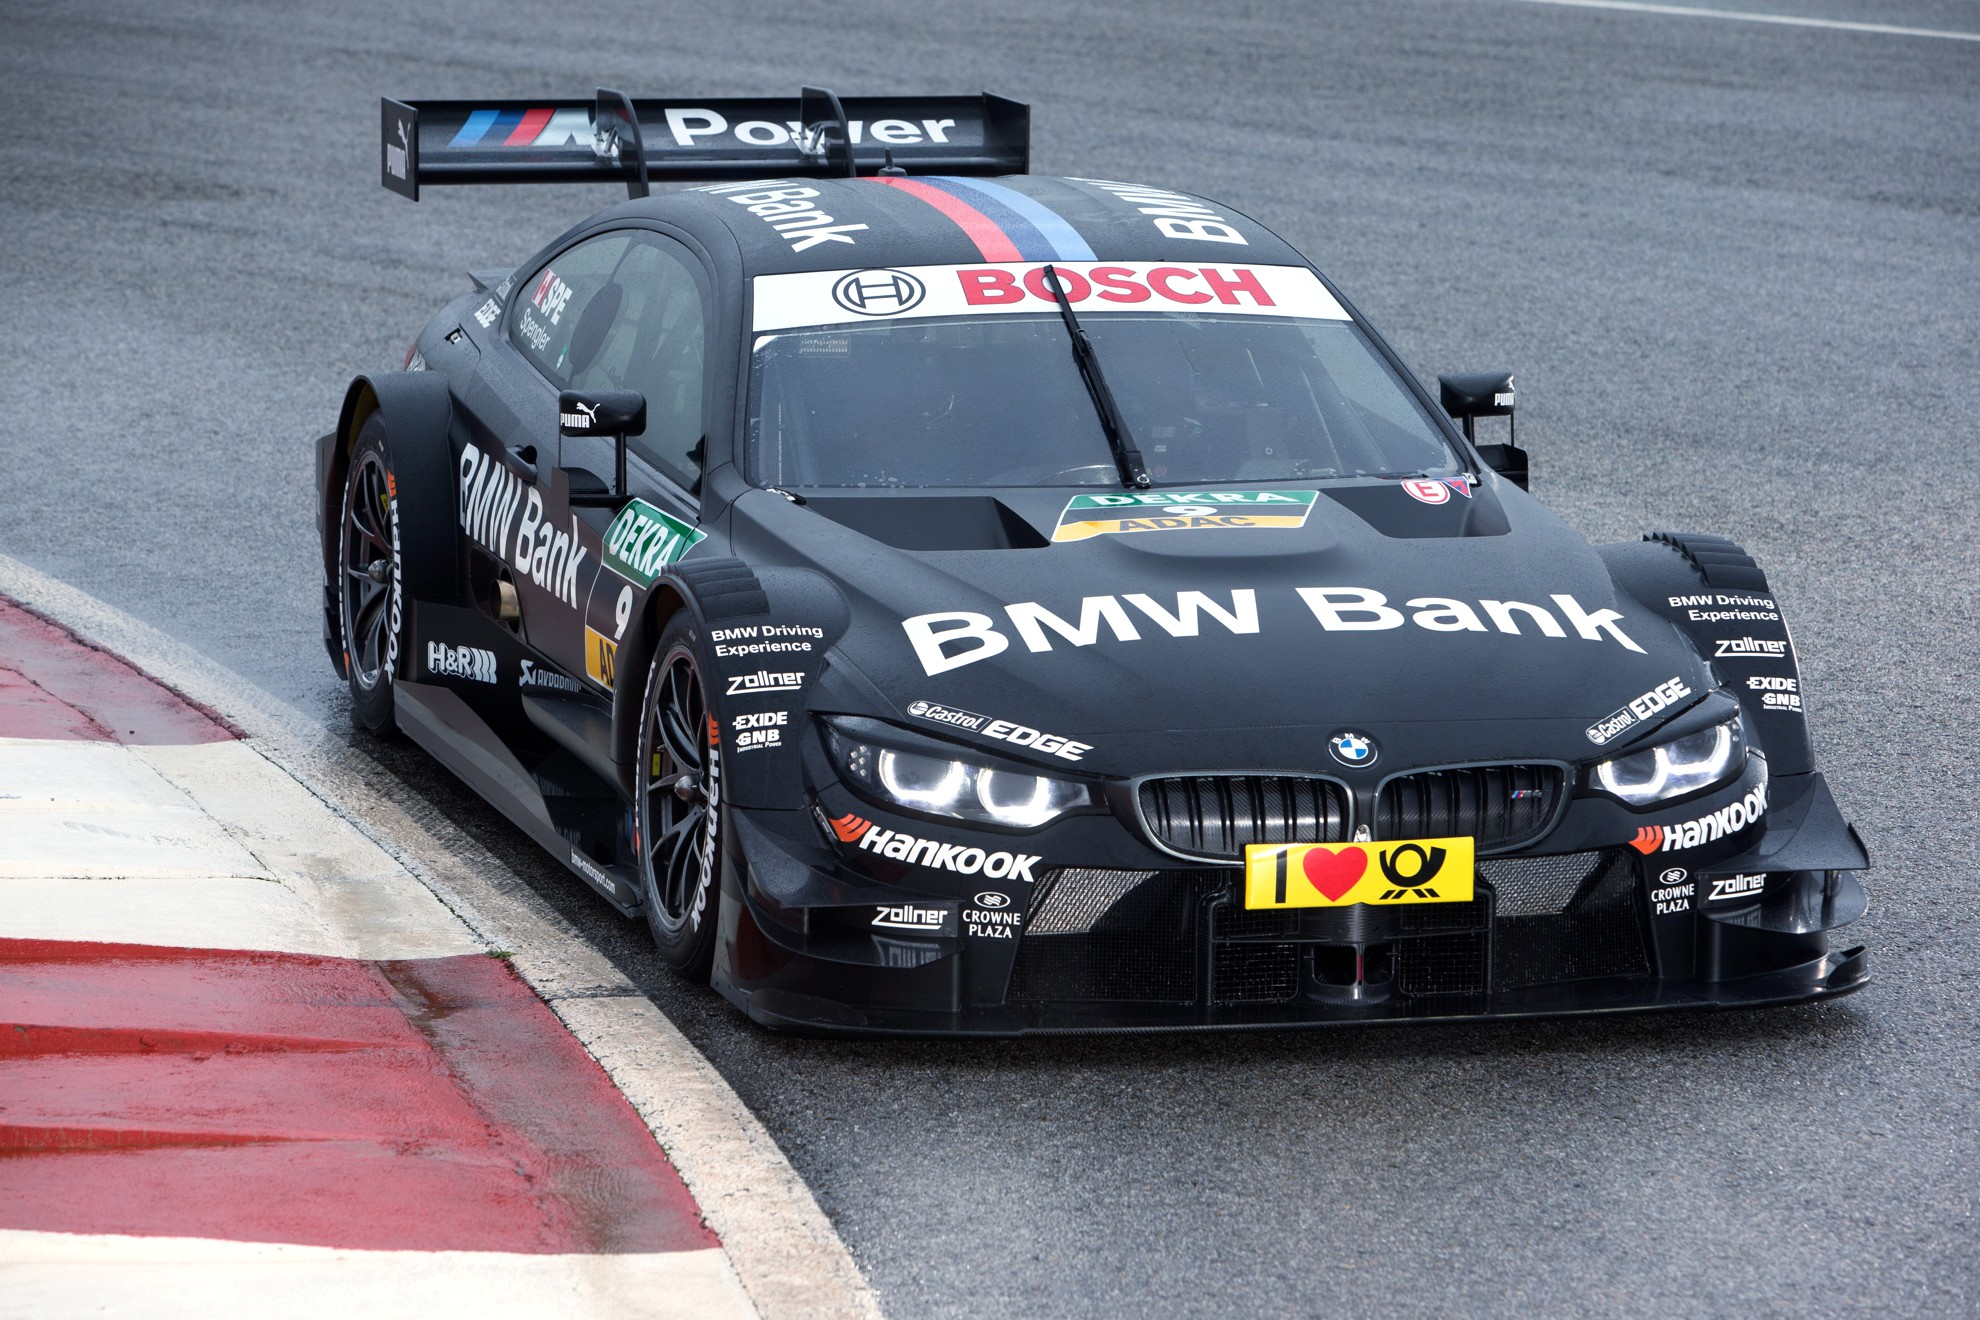 Black-BMW-Racing-Car